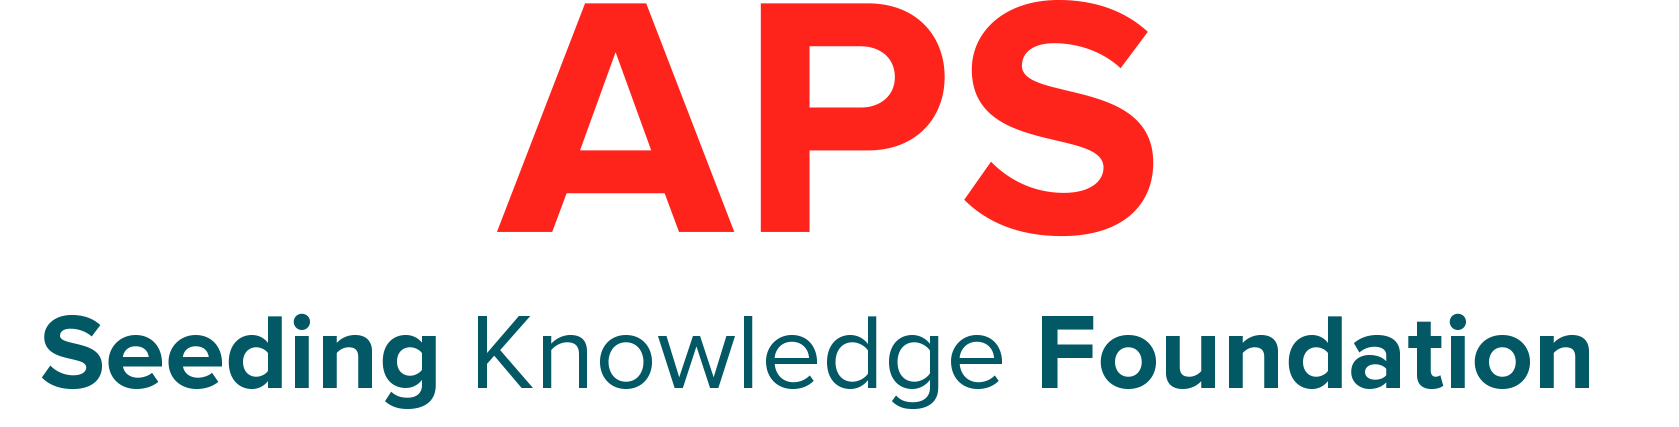 APS FOUNDATION